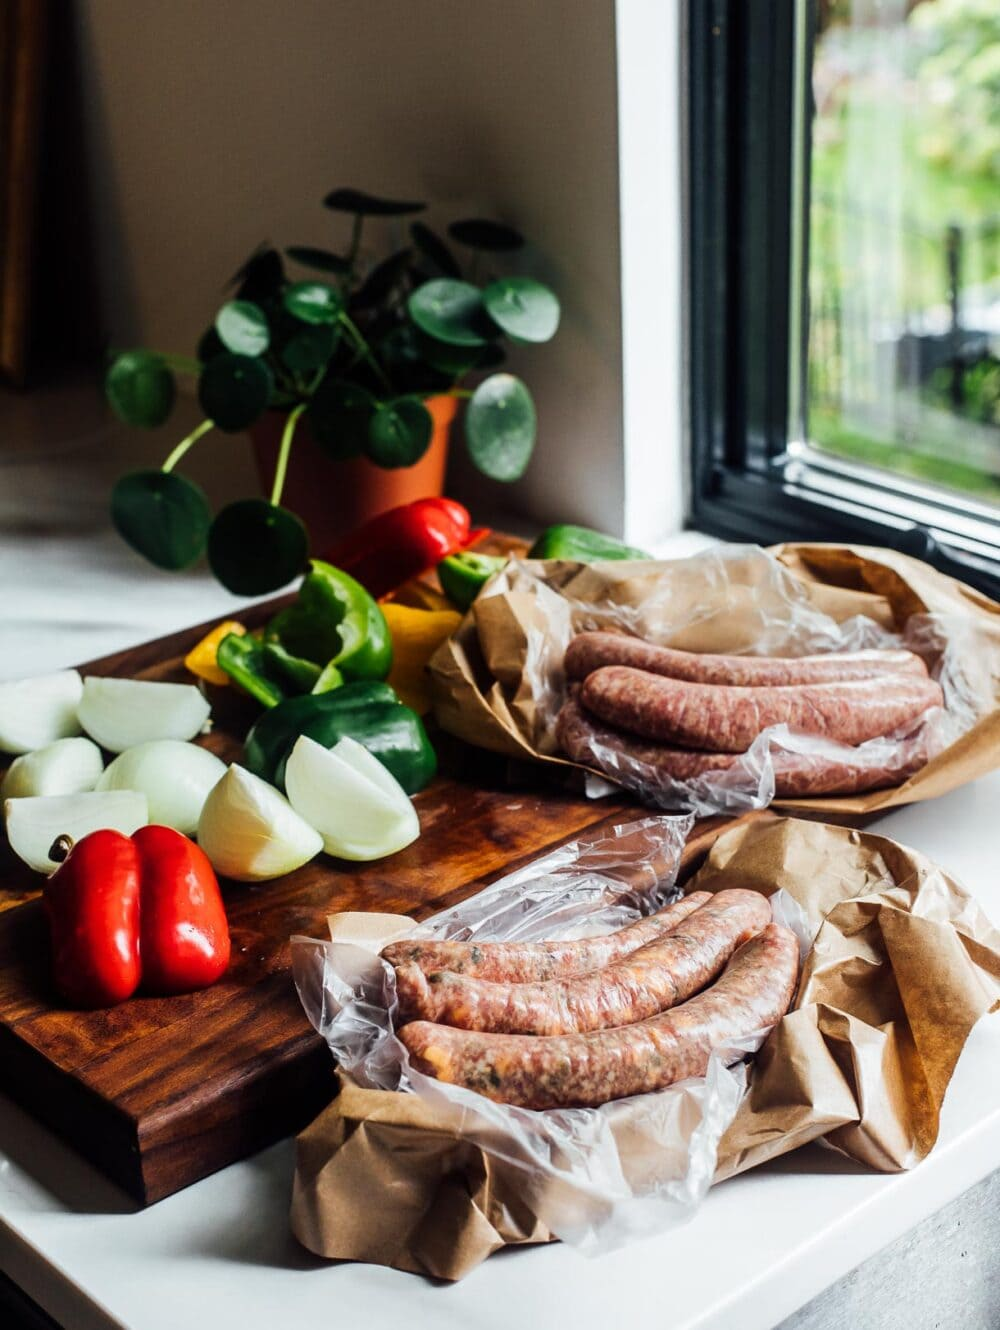 fresh brats sitting on a kitchen counter amongst a wooden cutting board with vegetables.